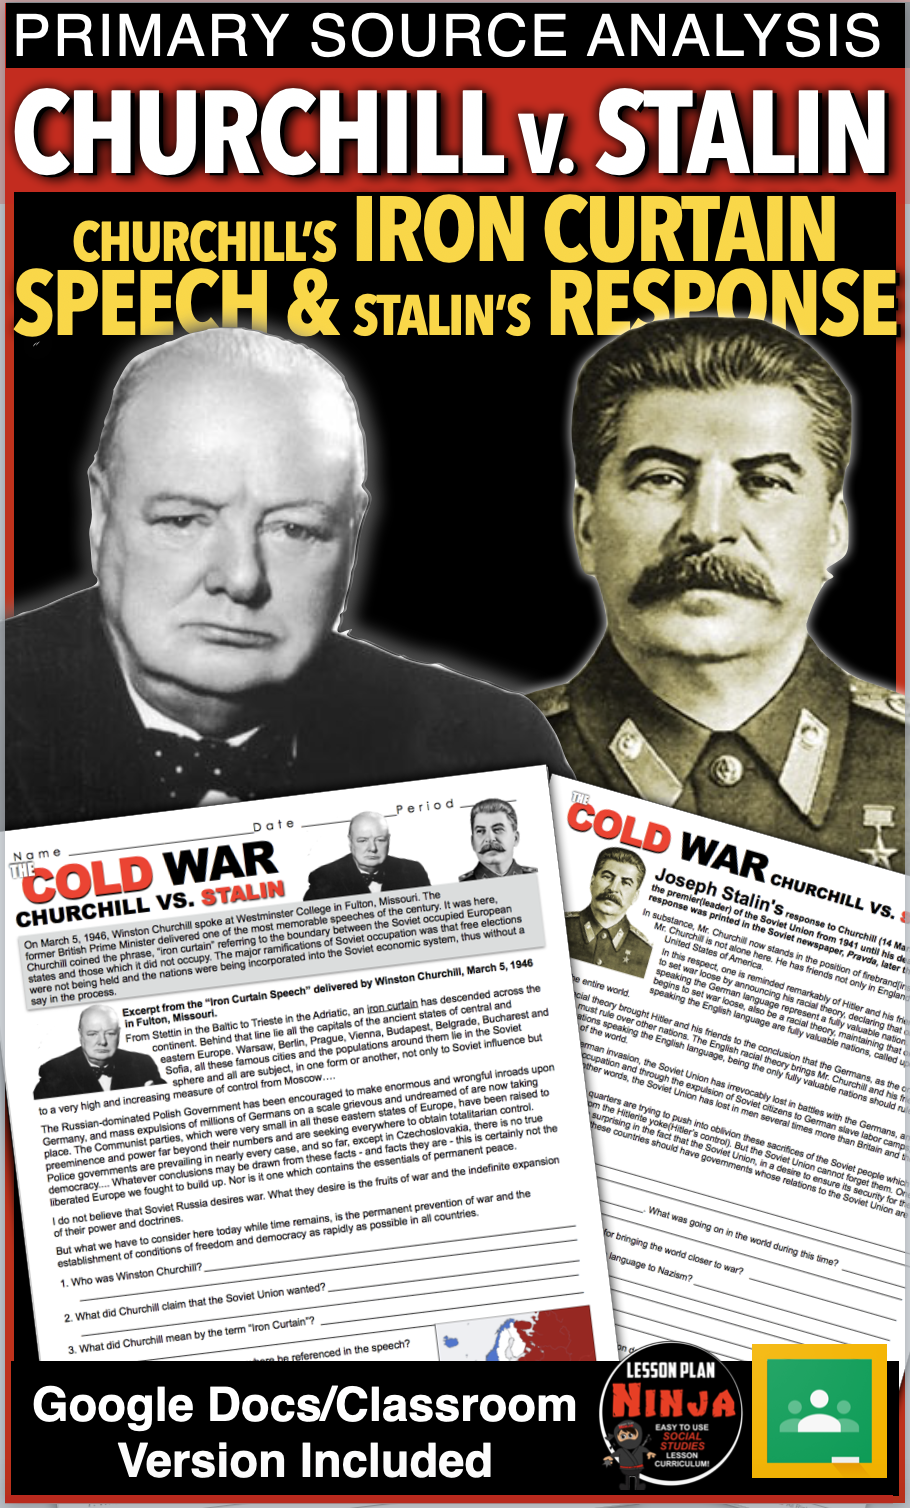 Cold War Churchill V Stalin Primary Source Analysis Iron